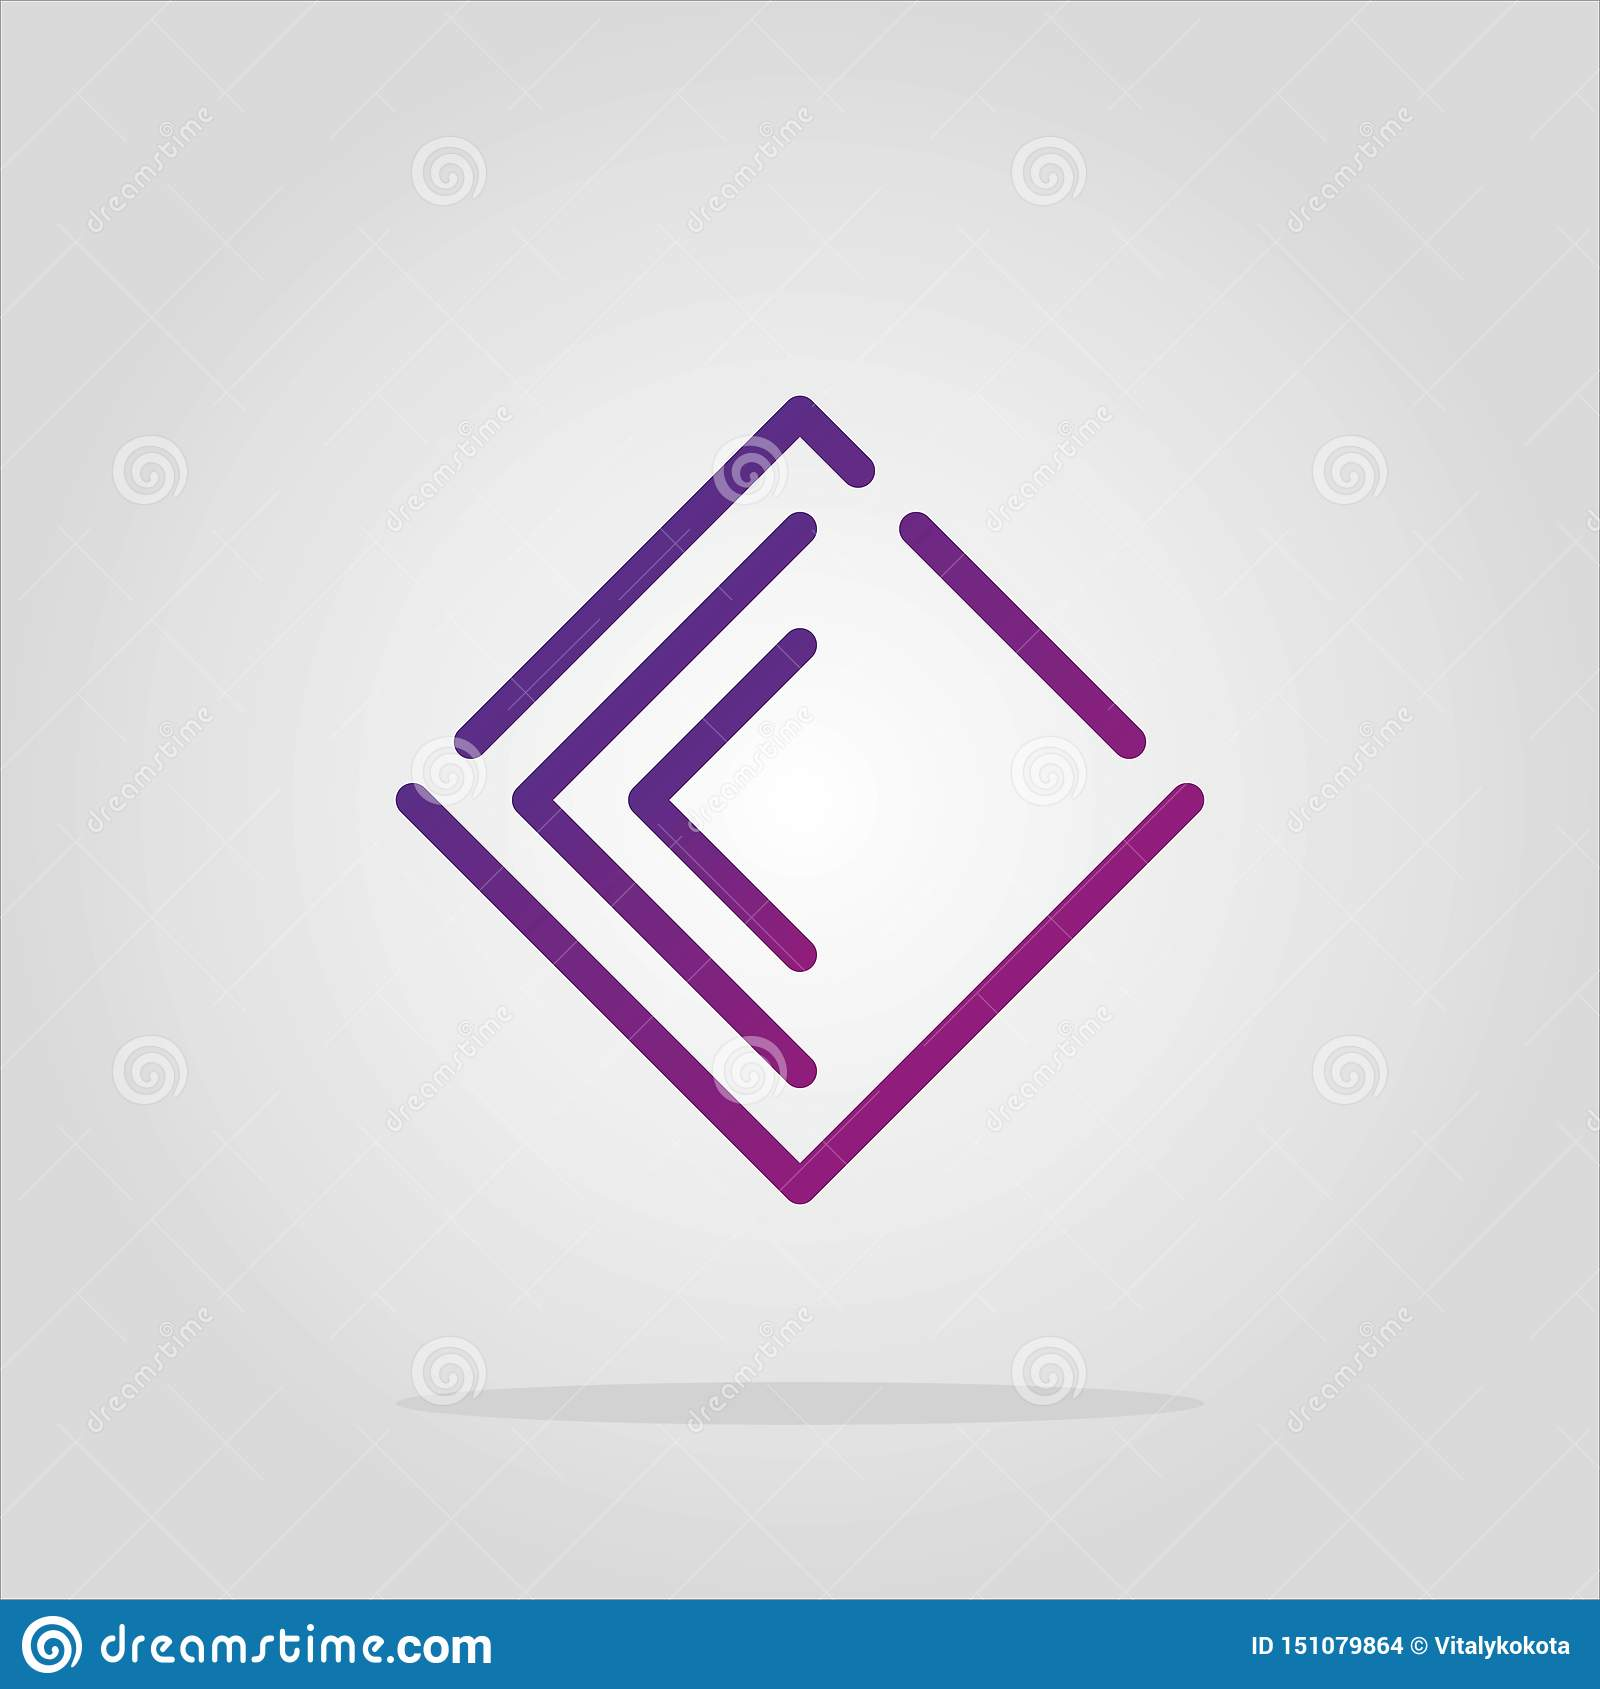 Vector abstract romb logo elements collection. Material design, flat, line-art styles. Company symbol or app icon. diamond logo. a